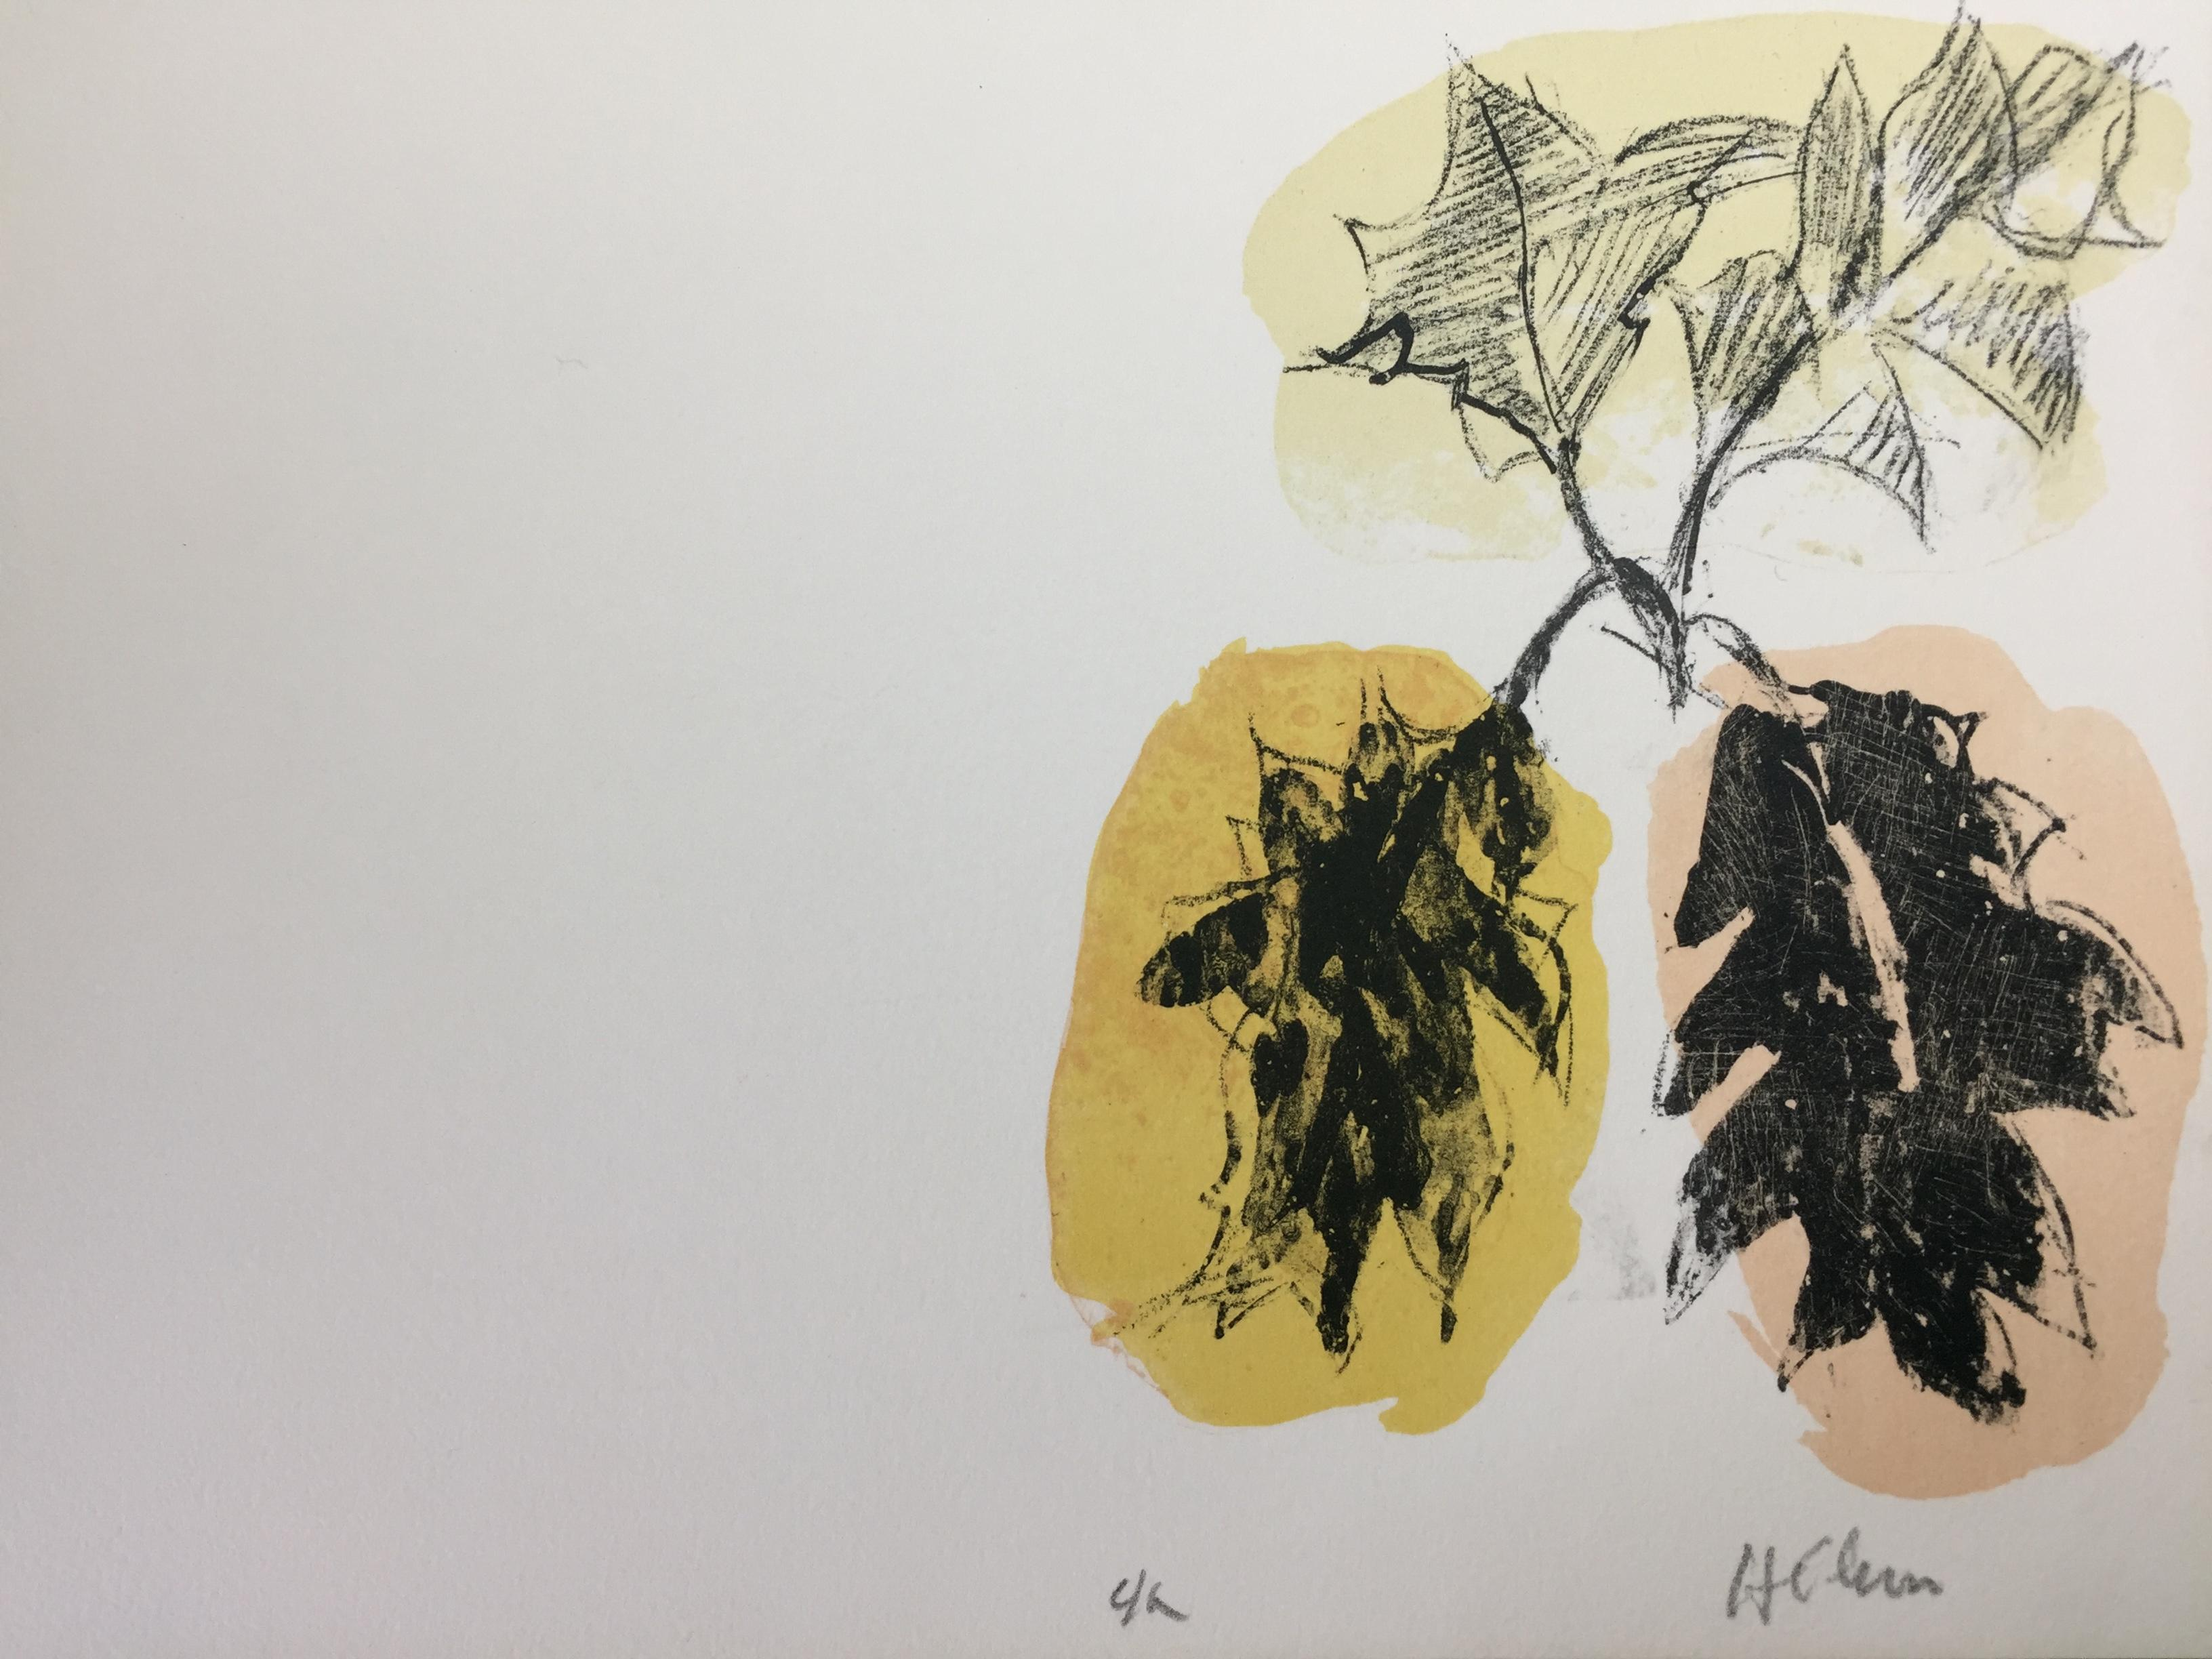 French Modern Drawing by Jean Hélion - Herbiers